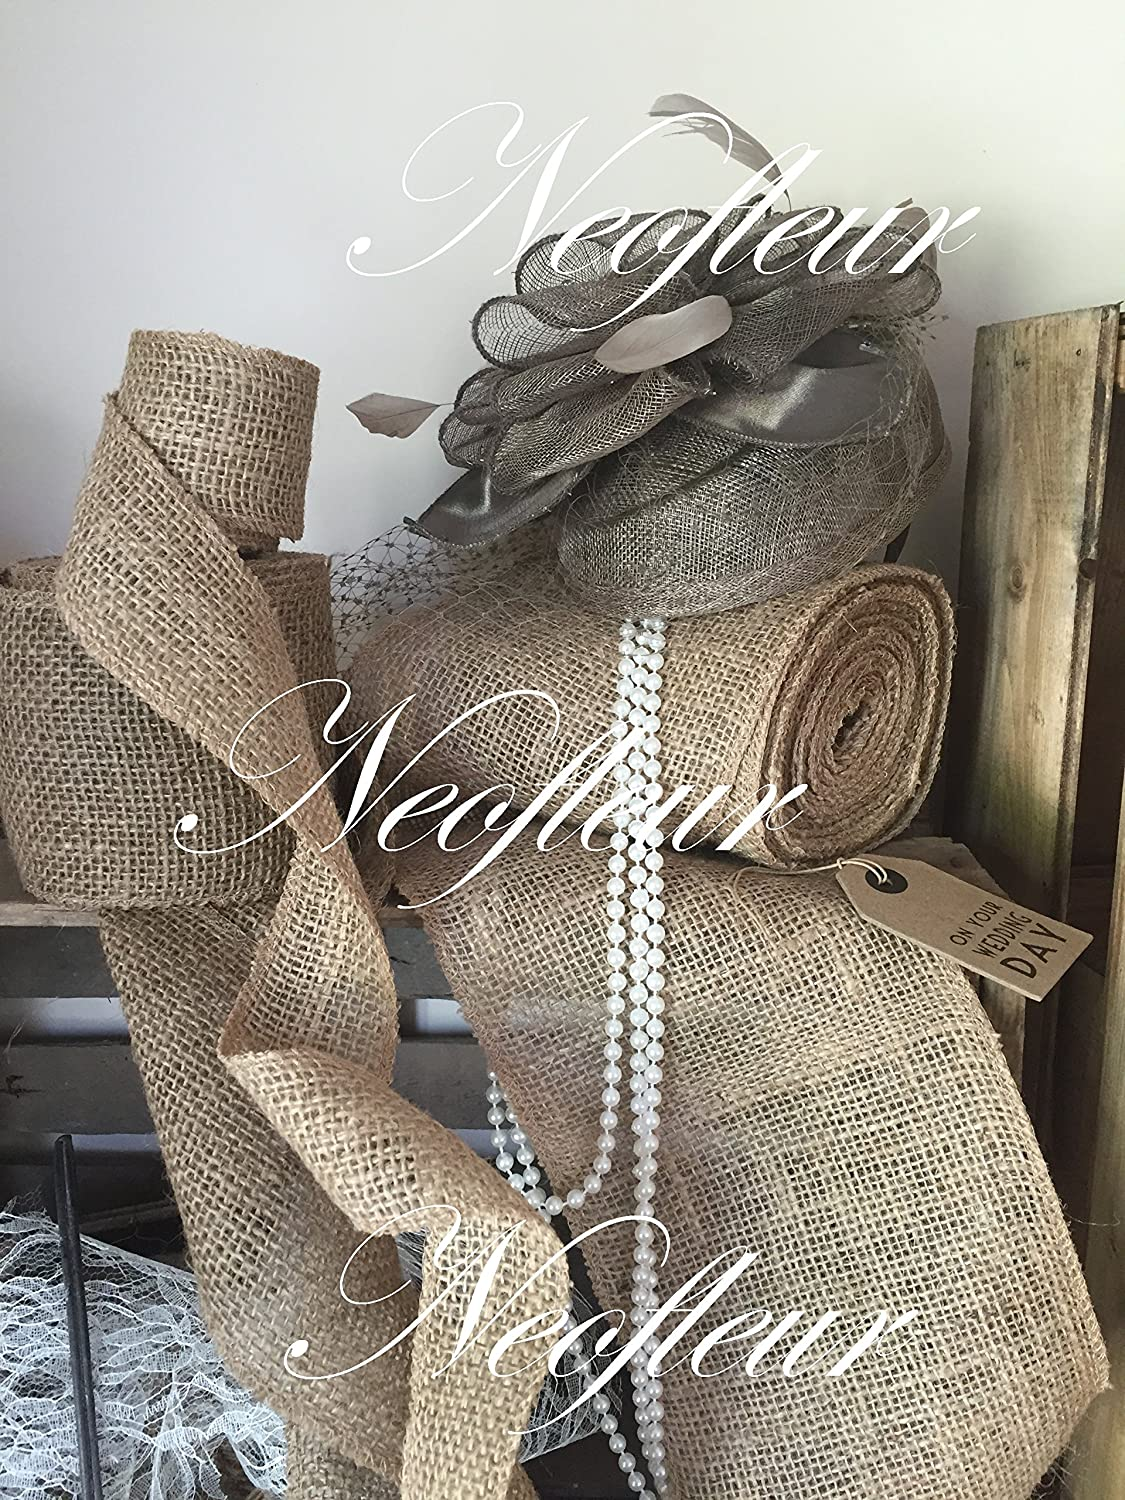 Neofleur 5 metre roll (16 FEET) of Luxury Natural Hessian Burlap Jute Fabric Ribbon for Wedding Events,Table Runners, hessian chair sash, party or any rustic decoration. Home Decor, Christmas vintage styling, Wreaths & Bows : AVAILABLE IN WIDTHS OF 2